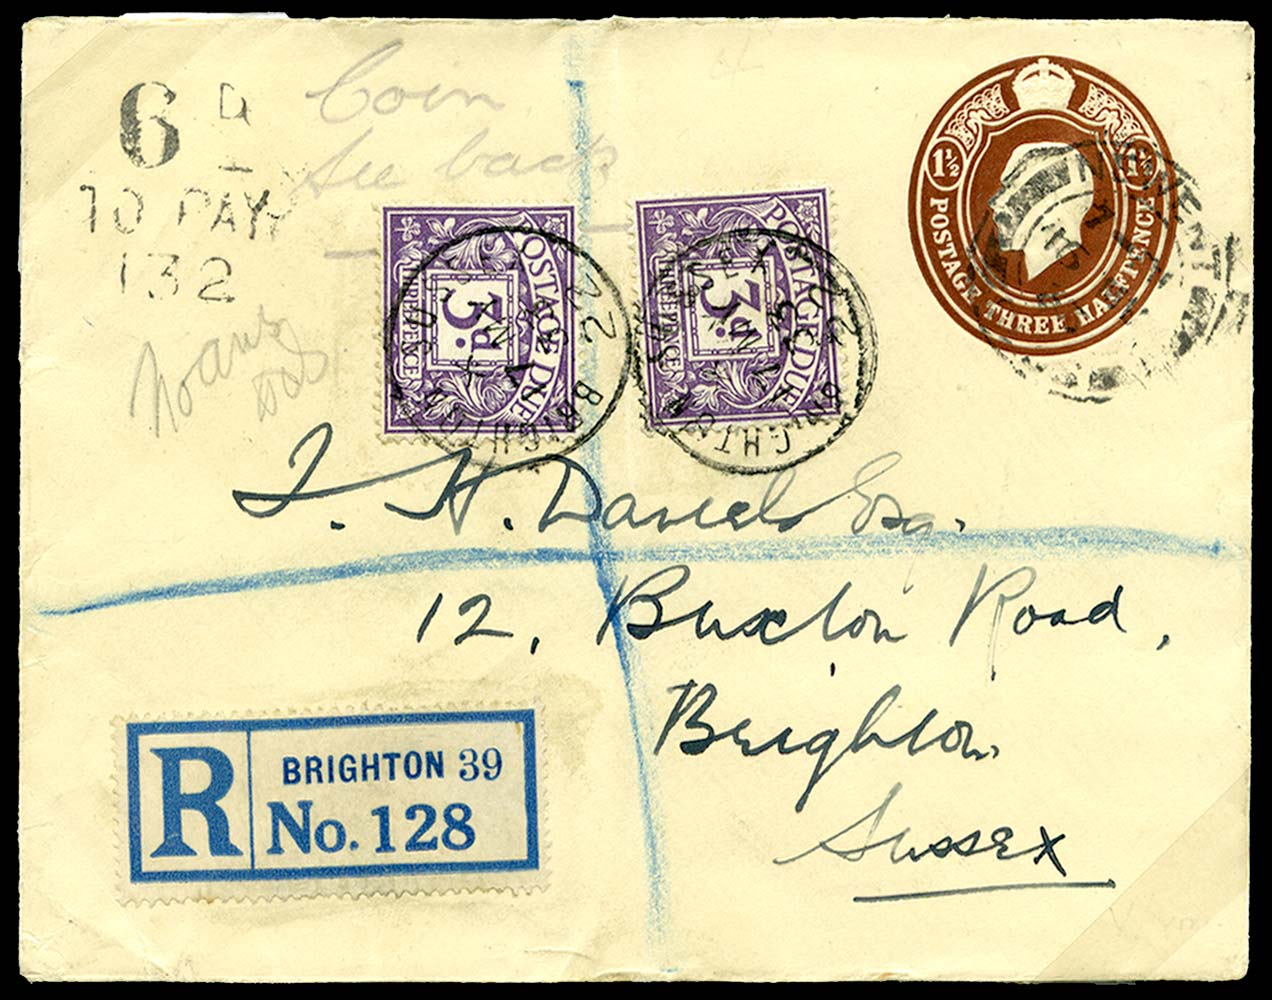 GB 1933  SGD14 Postage Due - Compulsory registered cover containing coin